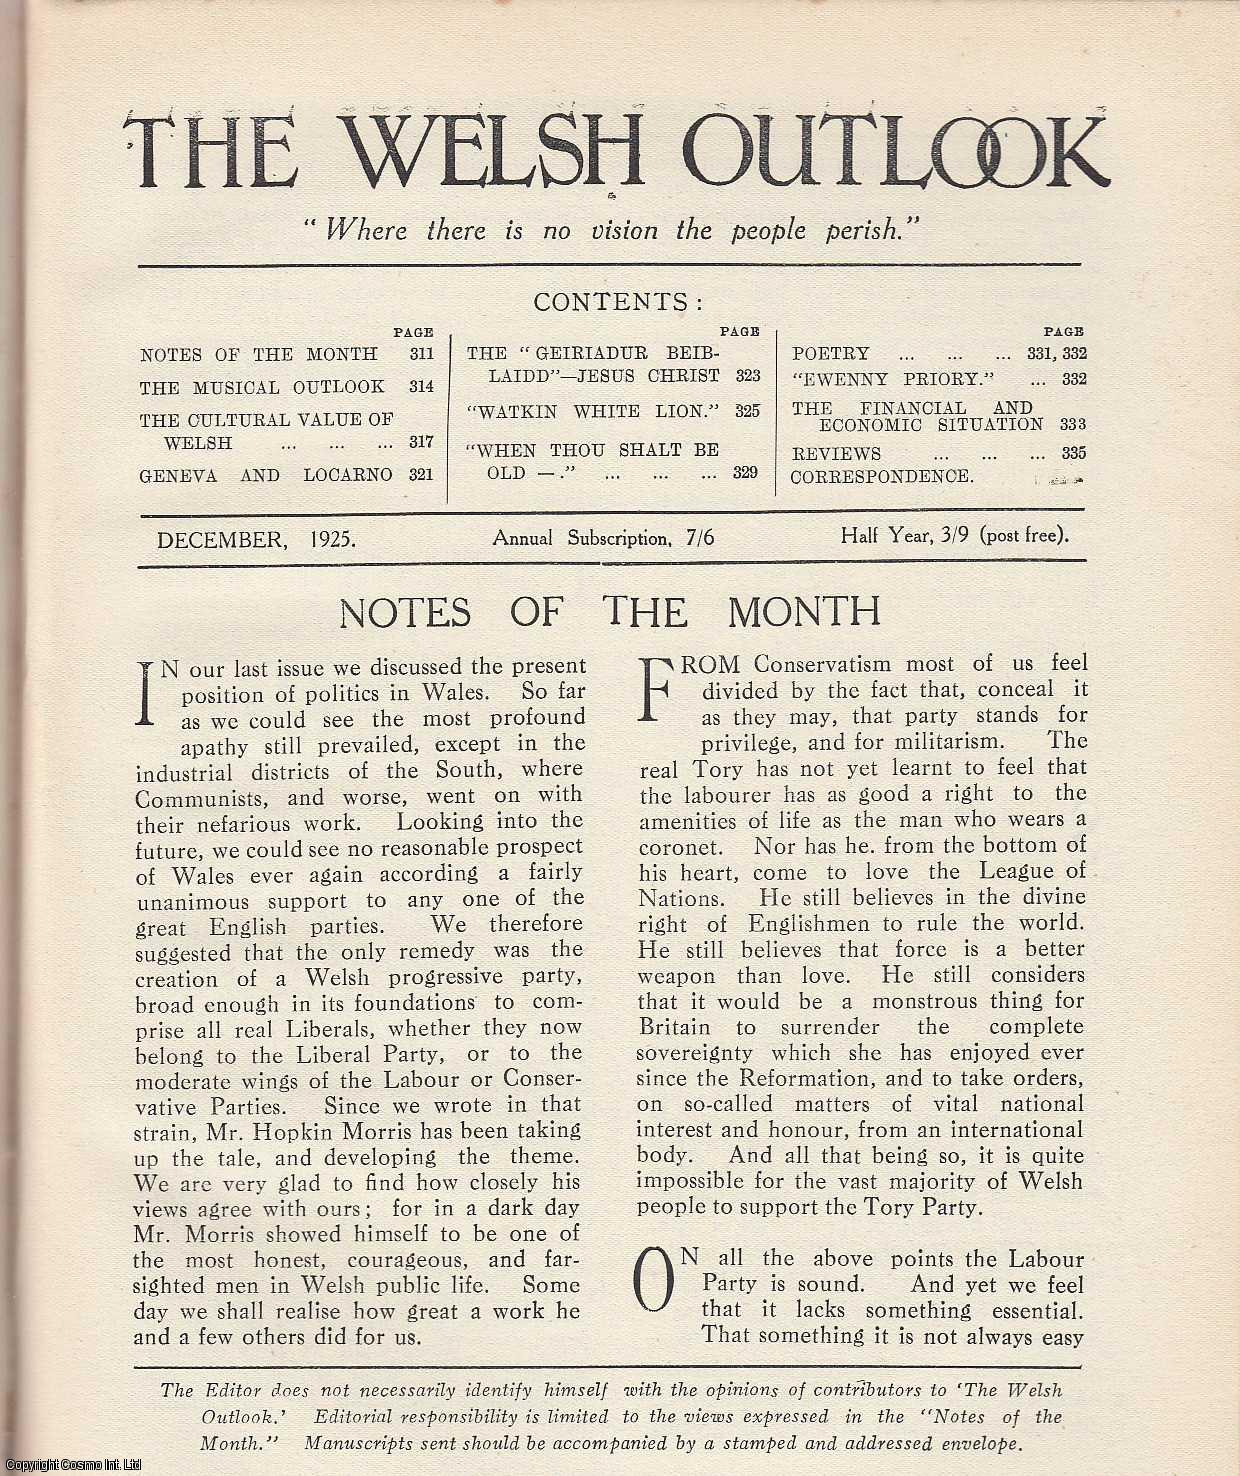 The Welsh Outlook. A Monthly Journal of National Social Progress. December, 1925. Contains; The Musical Outlook by Sir H. Walford Davies; The Cultural Value of Welsh by Professor D. Miall Edwards; Geneva and Locarno by Professor Charles K. Webster; The Geiriadur Beiblaidd - Jesus Christ by Rev. J. Williams Hughes; Watkin White Lion: A Tale of a Summer Flood by Evelyn Lewes; When Thou Shalt be Old by Ellen A.C. Lloyd-Williams; Poetry by A.G. Prys-Jones; Ewenny Priory by D. Rees Williams; The Financial & Economic Outlook by W. Tudor Davies., Thomas Jones (Editor)